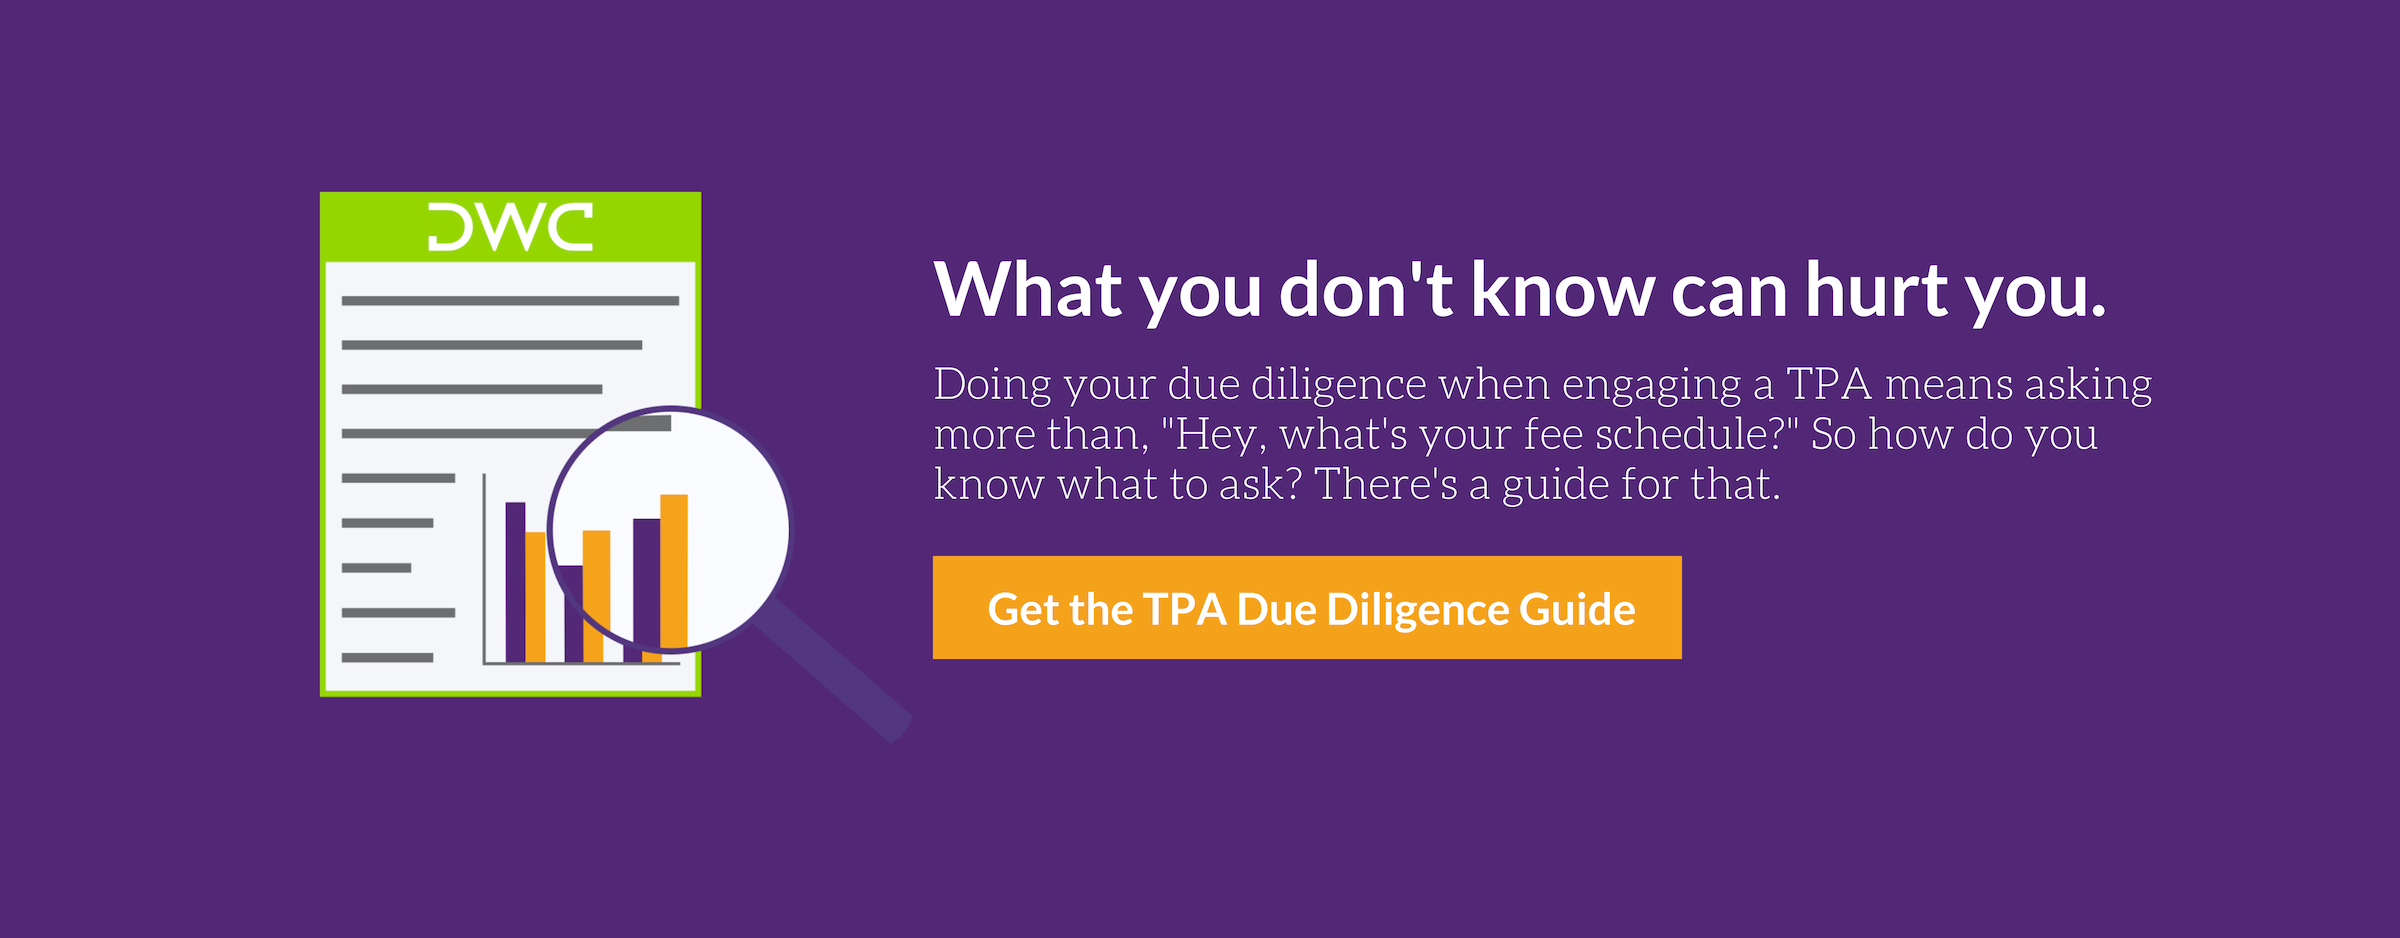 Download DWC's TPA Due Diligence Guide Here